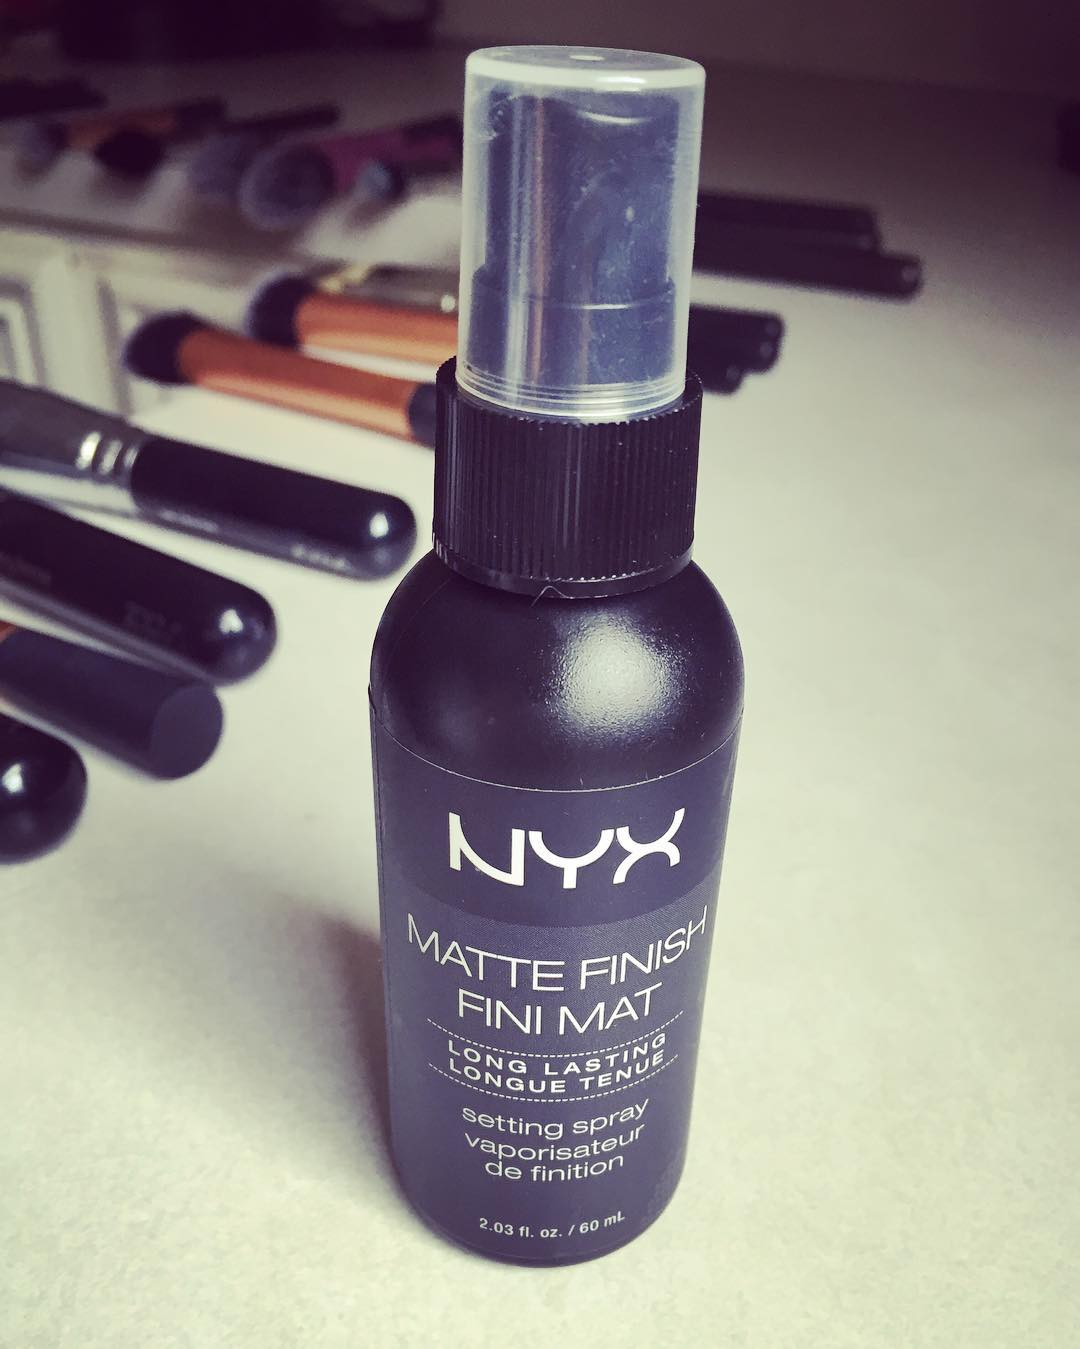 Setting sprays help the makeup to set along with providing a boost of instant hydration to the skin. Think of it as the finish touch to your makeup. After you have finished your makeup, spray the face with a setting spray and let dry. The trick is to keep the spray at arm's length before applying and spray it small squirts, spreading it evenly all over the skin. Take a few seconds to let it dry.